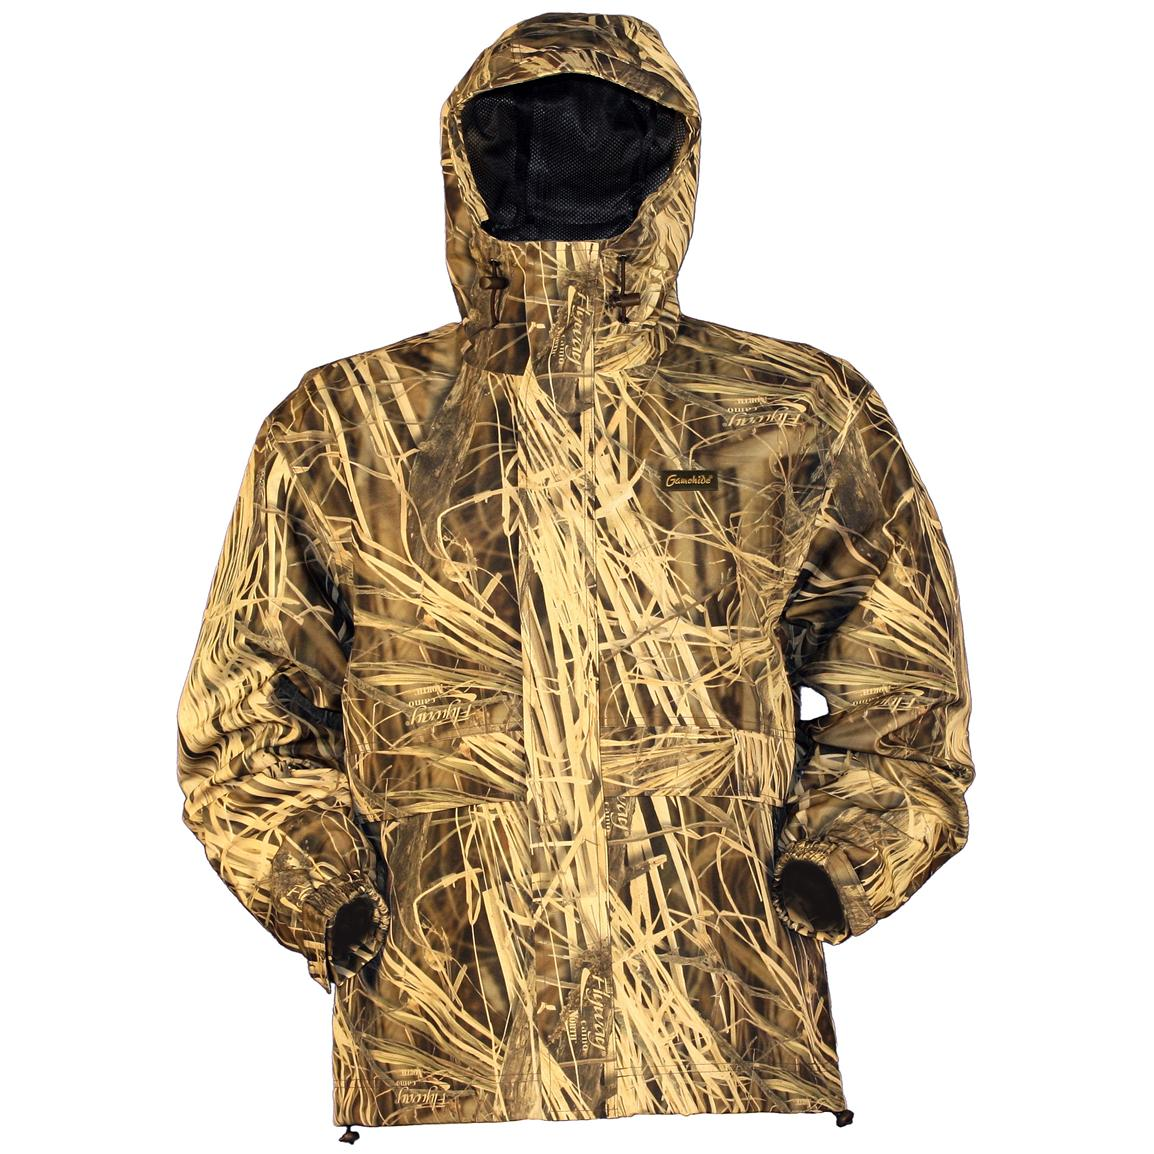 Under Armour Camo Hoodies For Men Under armour reaper ridgeUnder Armour For Men